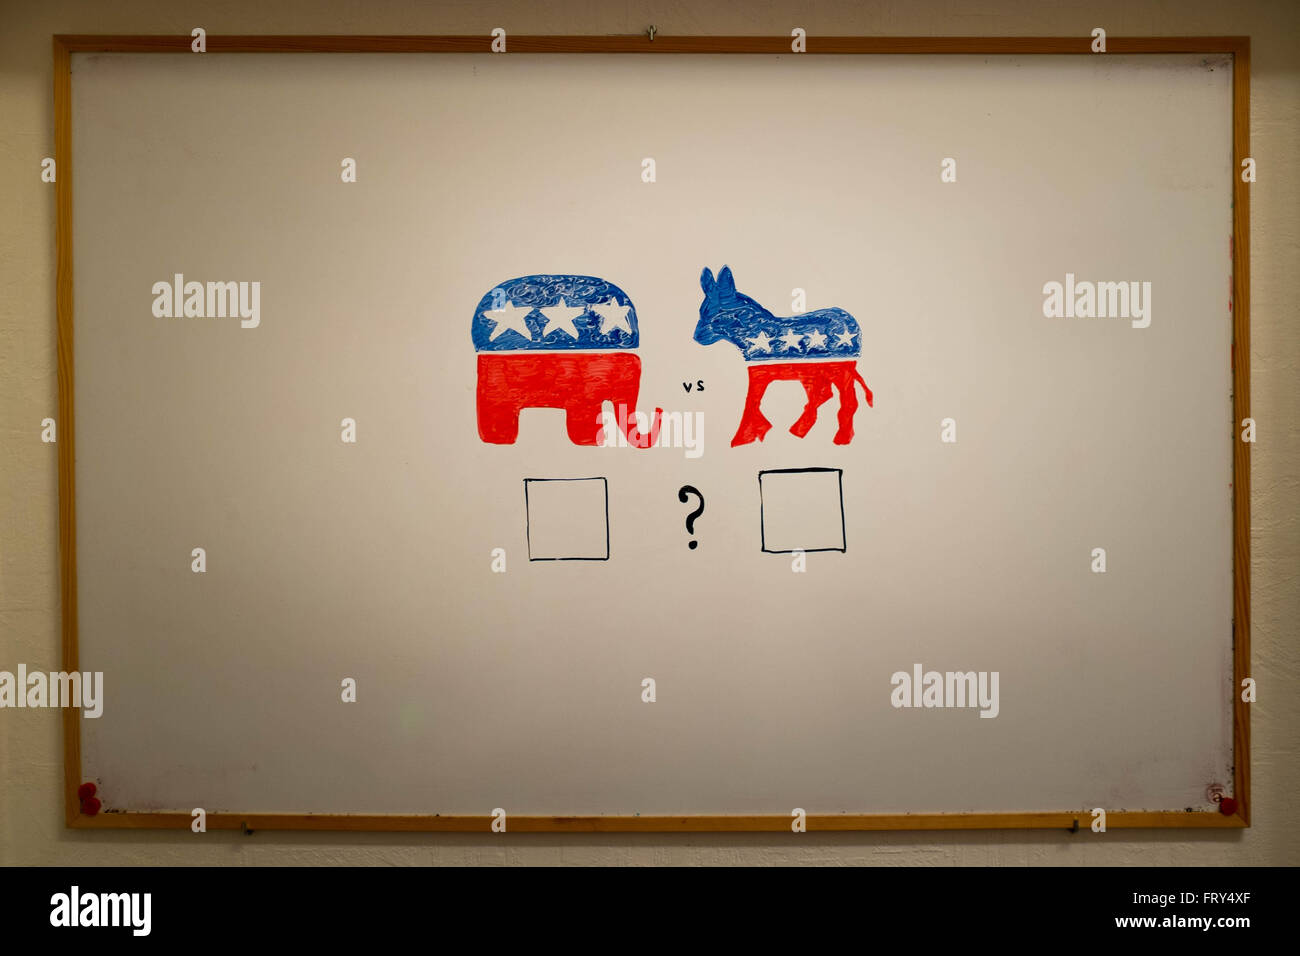 Concurrent politics concept. Democrats vs republicans elections. USA 2016. Drawn on whiteboard with markers. Empty - Stock Image